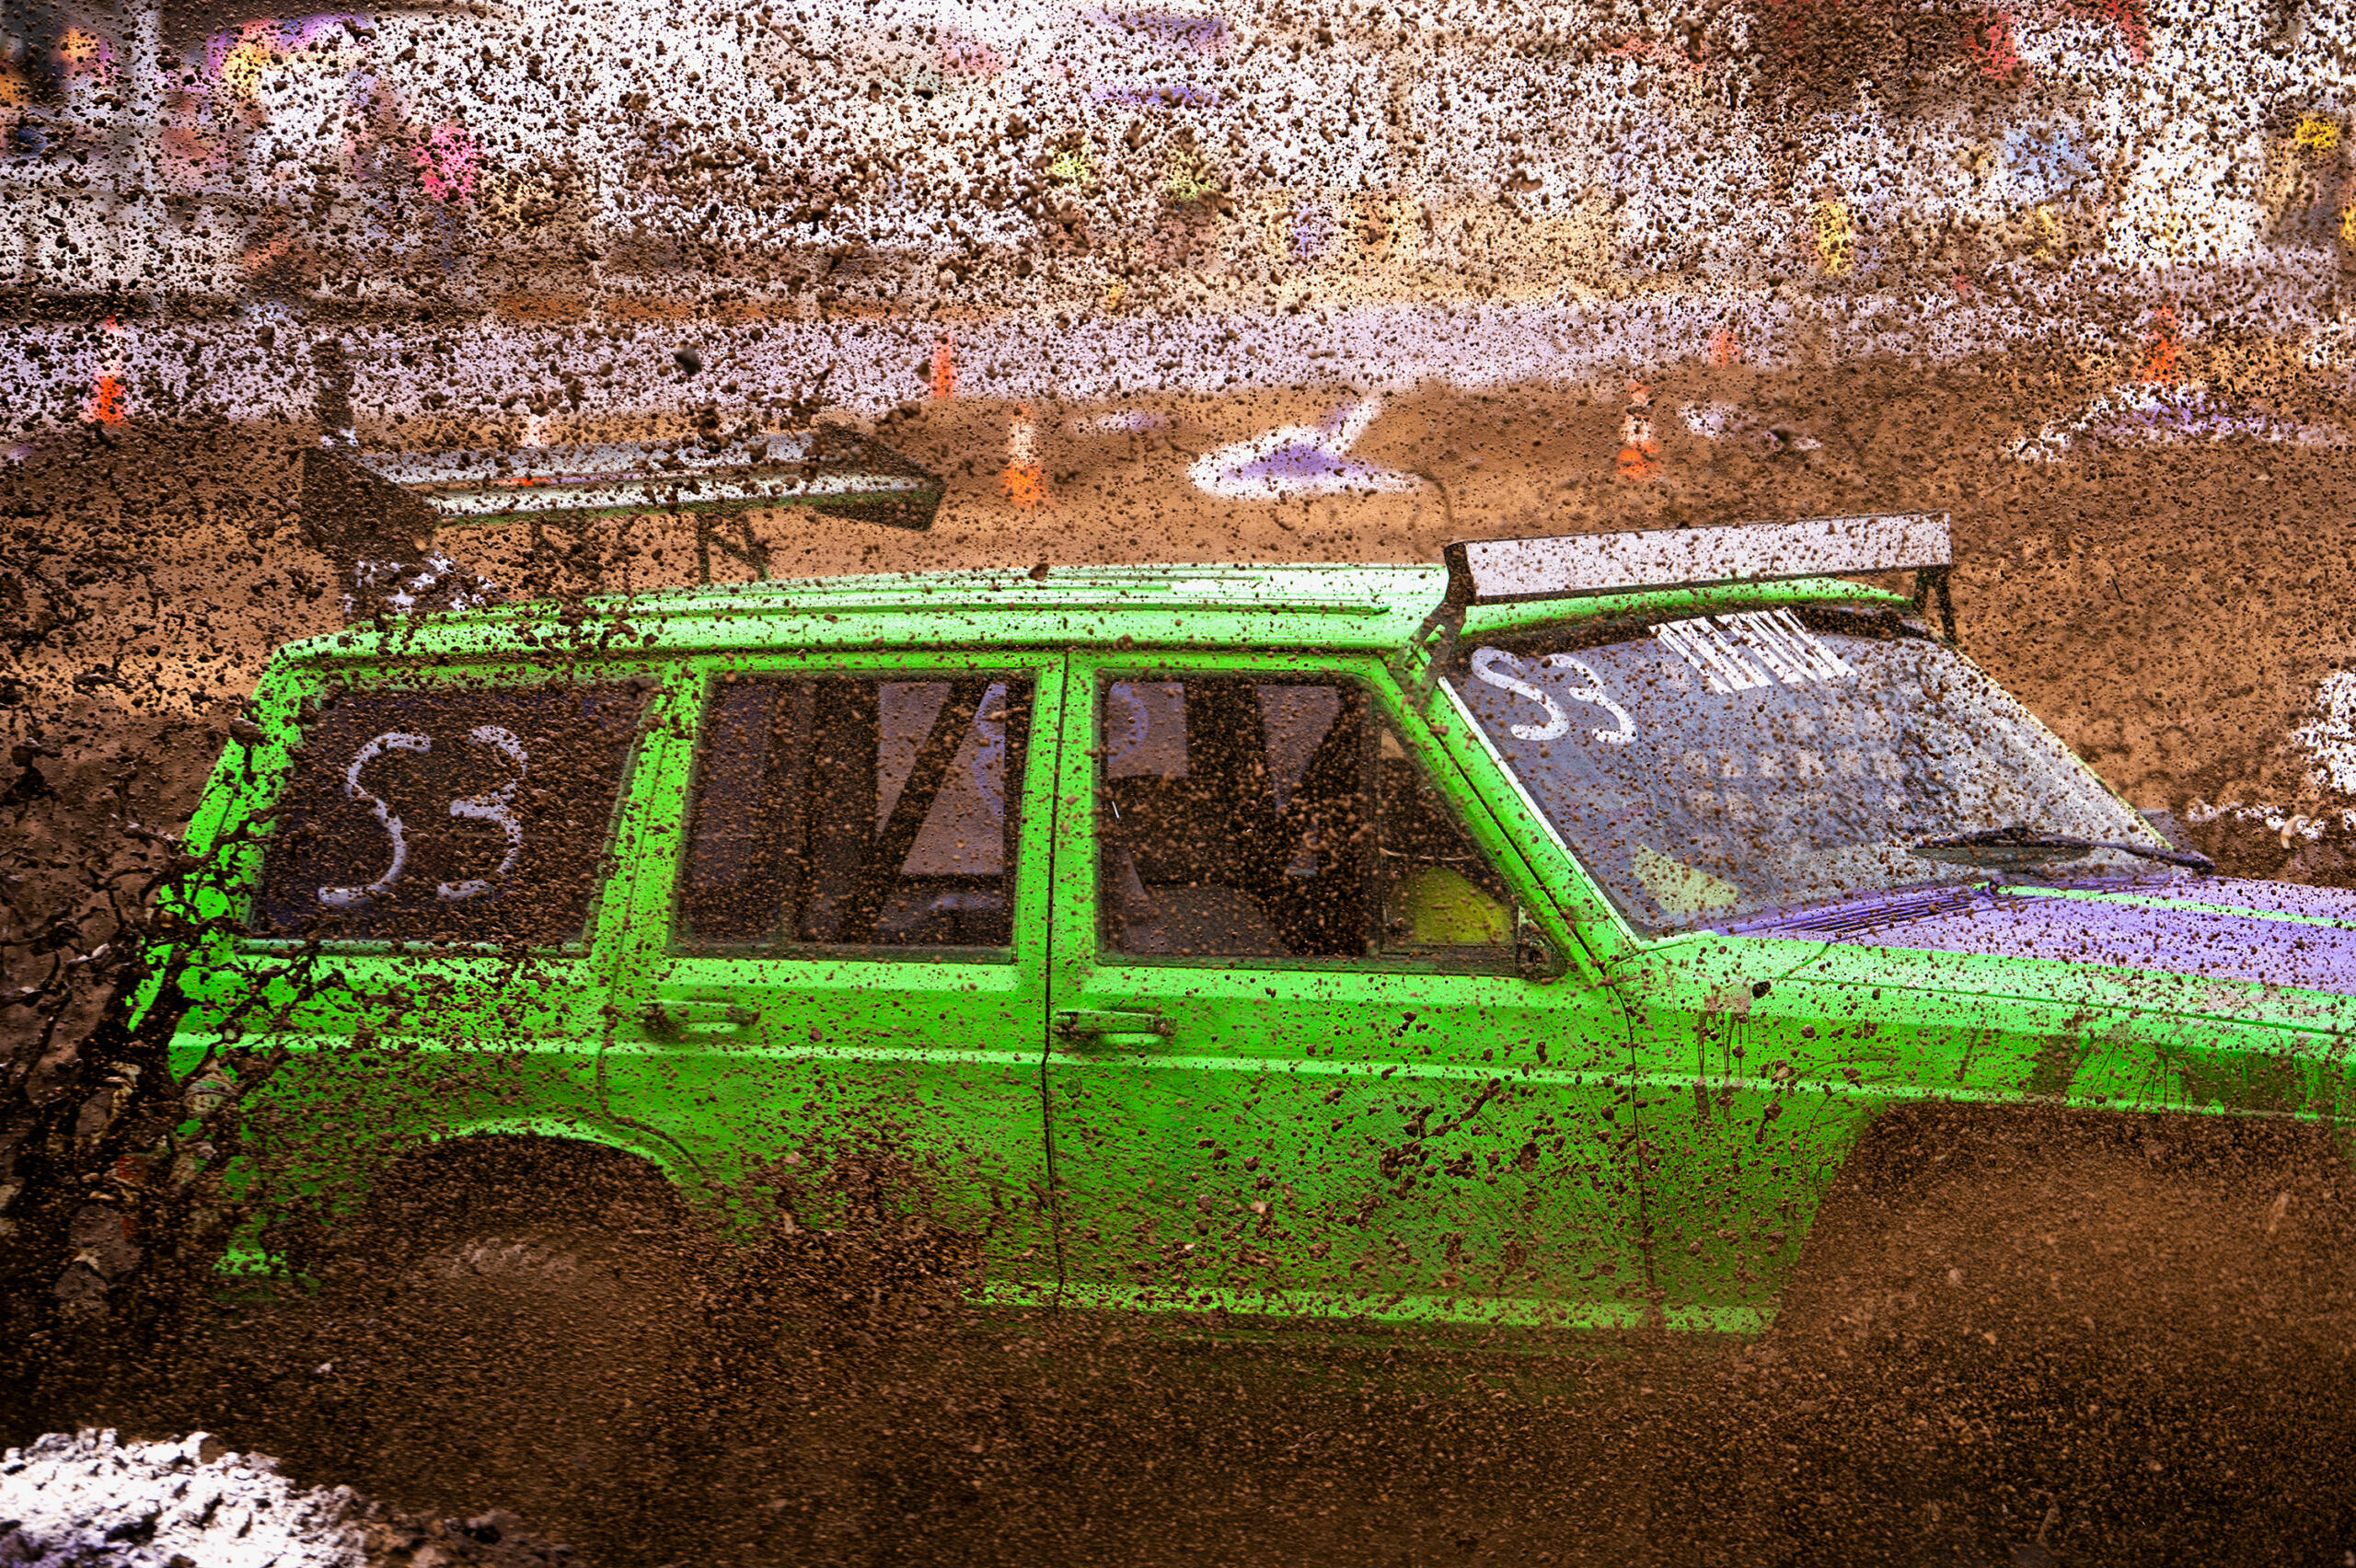 A jeep powers through a sheet of mud at the Tuff Trucks event on Friday, July 30, 2021, at the Clark County Fairgrounds. Tuff Trucks was the first in Clark County Event Center's Family Fun Series, which continues through Aug. 15.